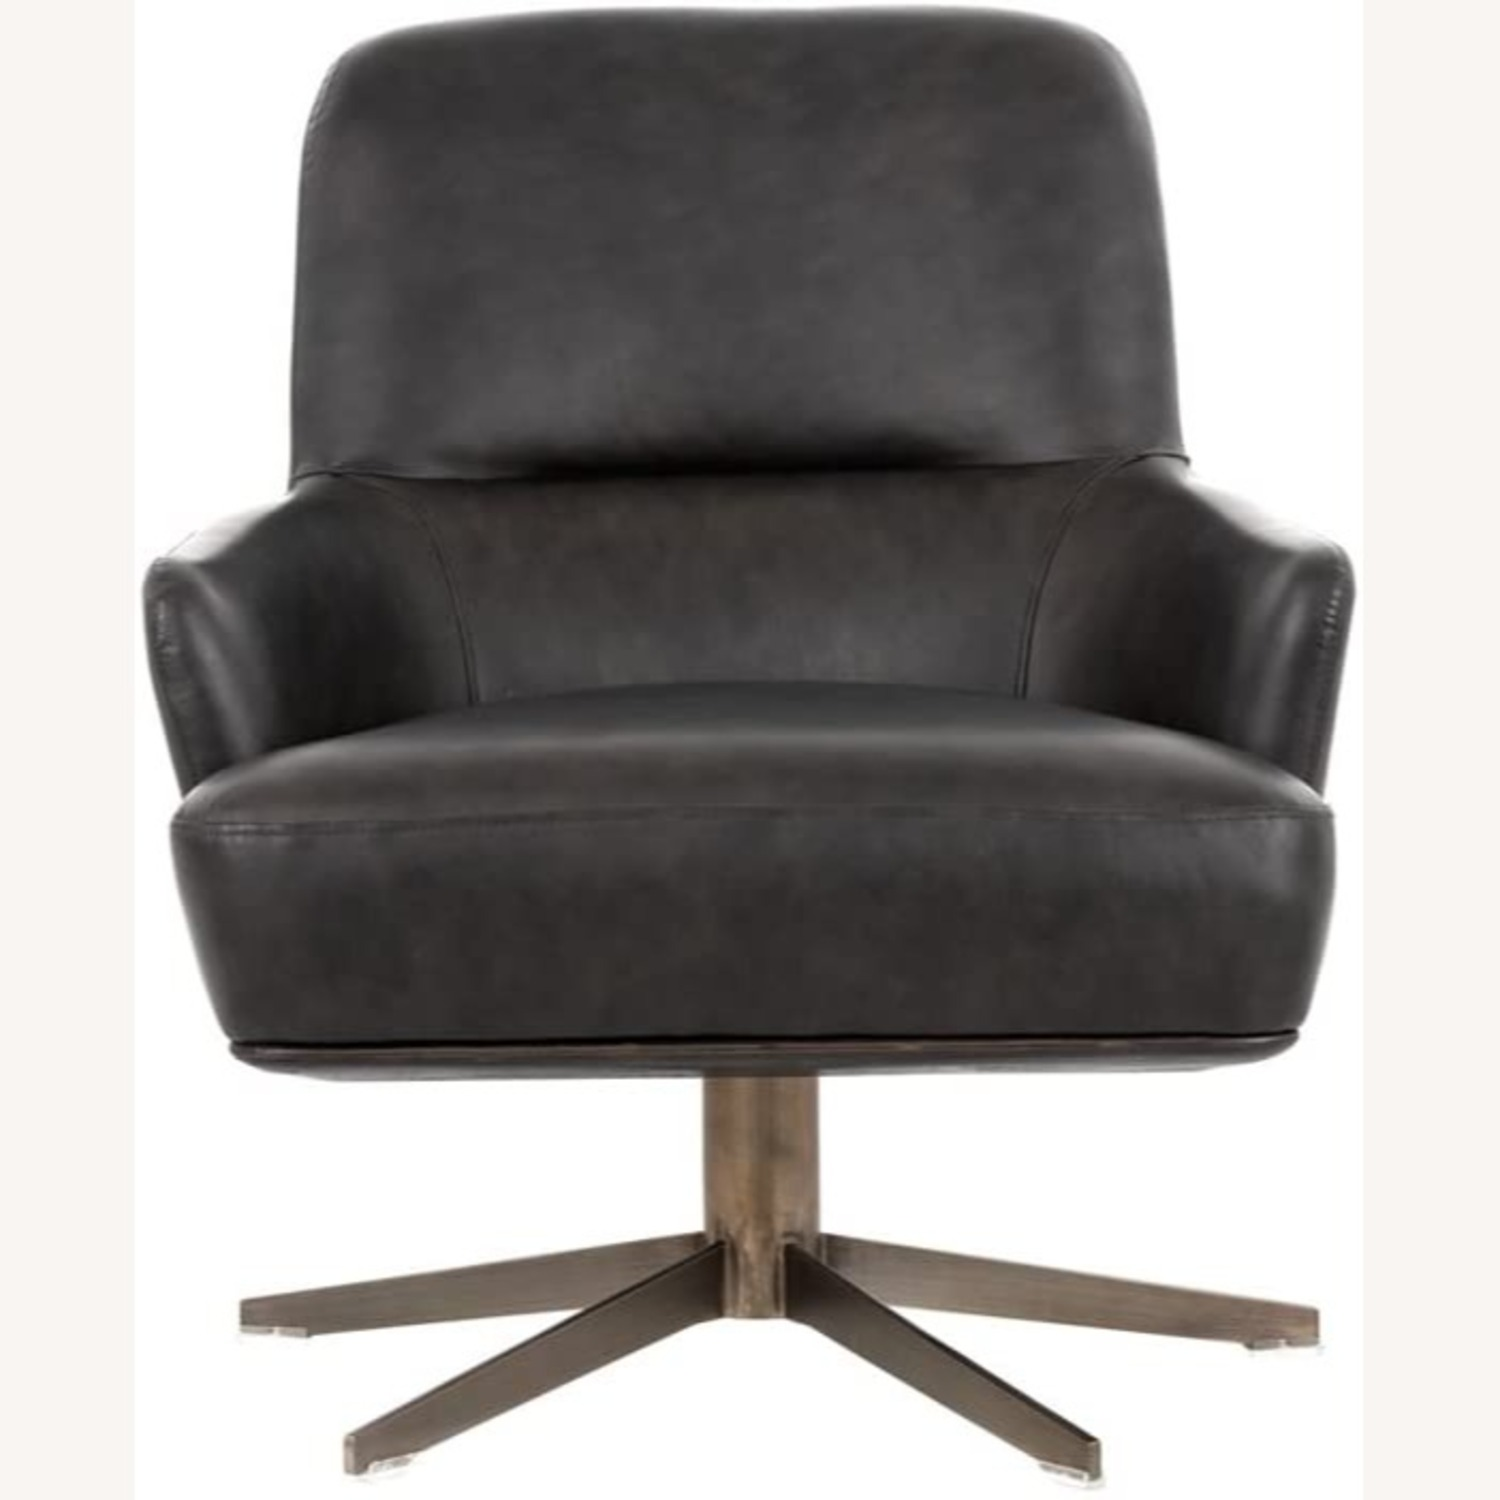 Modern Swivel Chair - Charcoal Leather - image-1